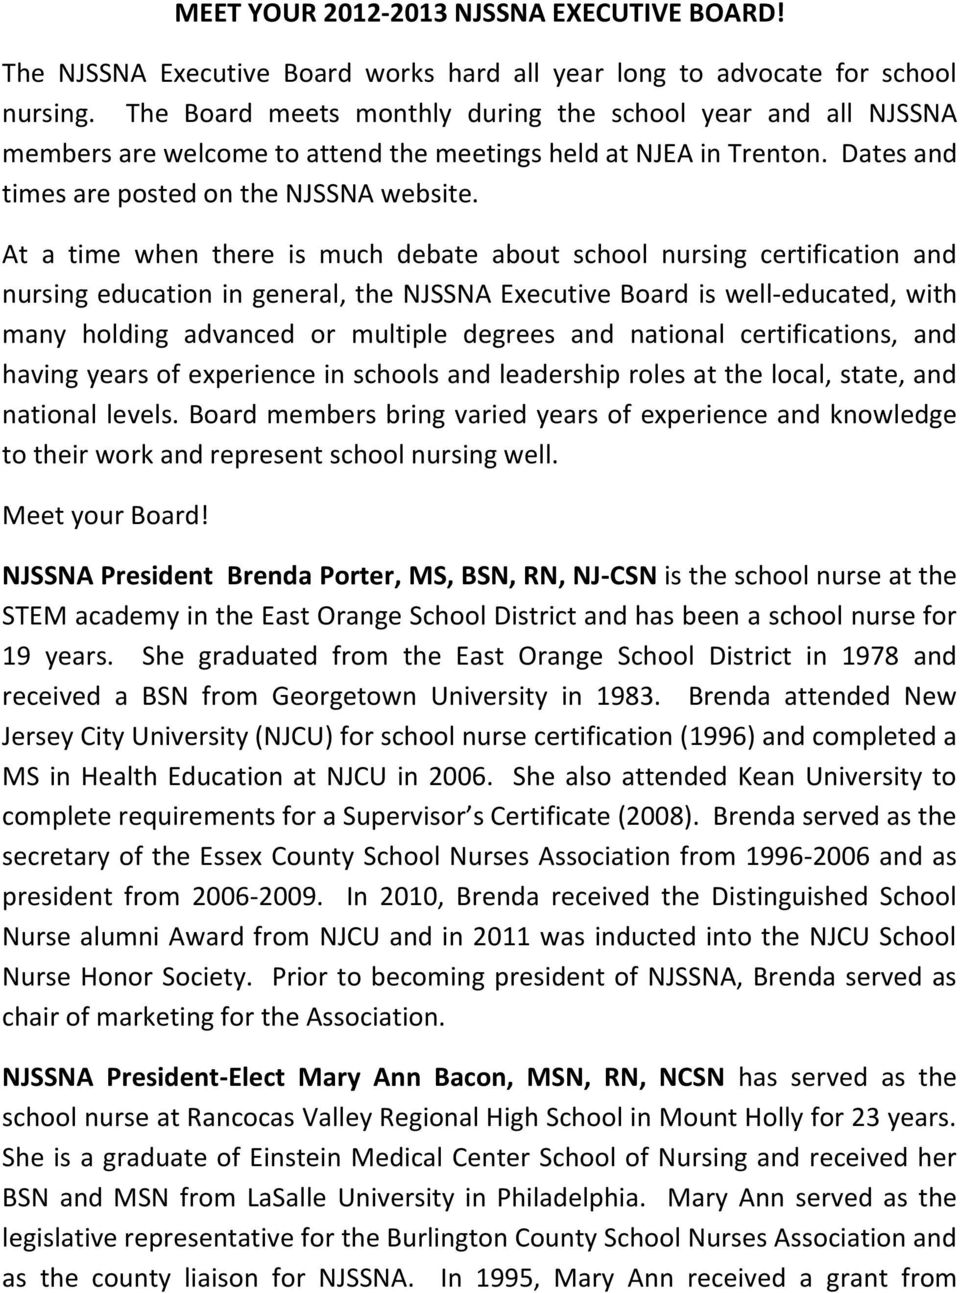 At a time when there is much debate about school nursing certification and nursing education in general, the NJSSNA Executive Board is well-educated, with many holding advanced or multiple degrees